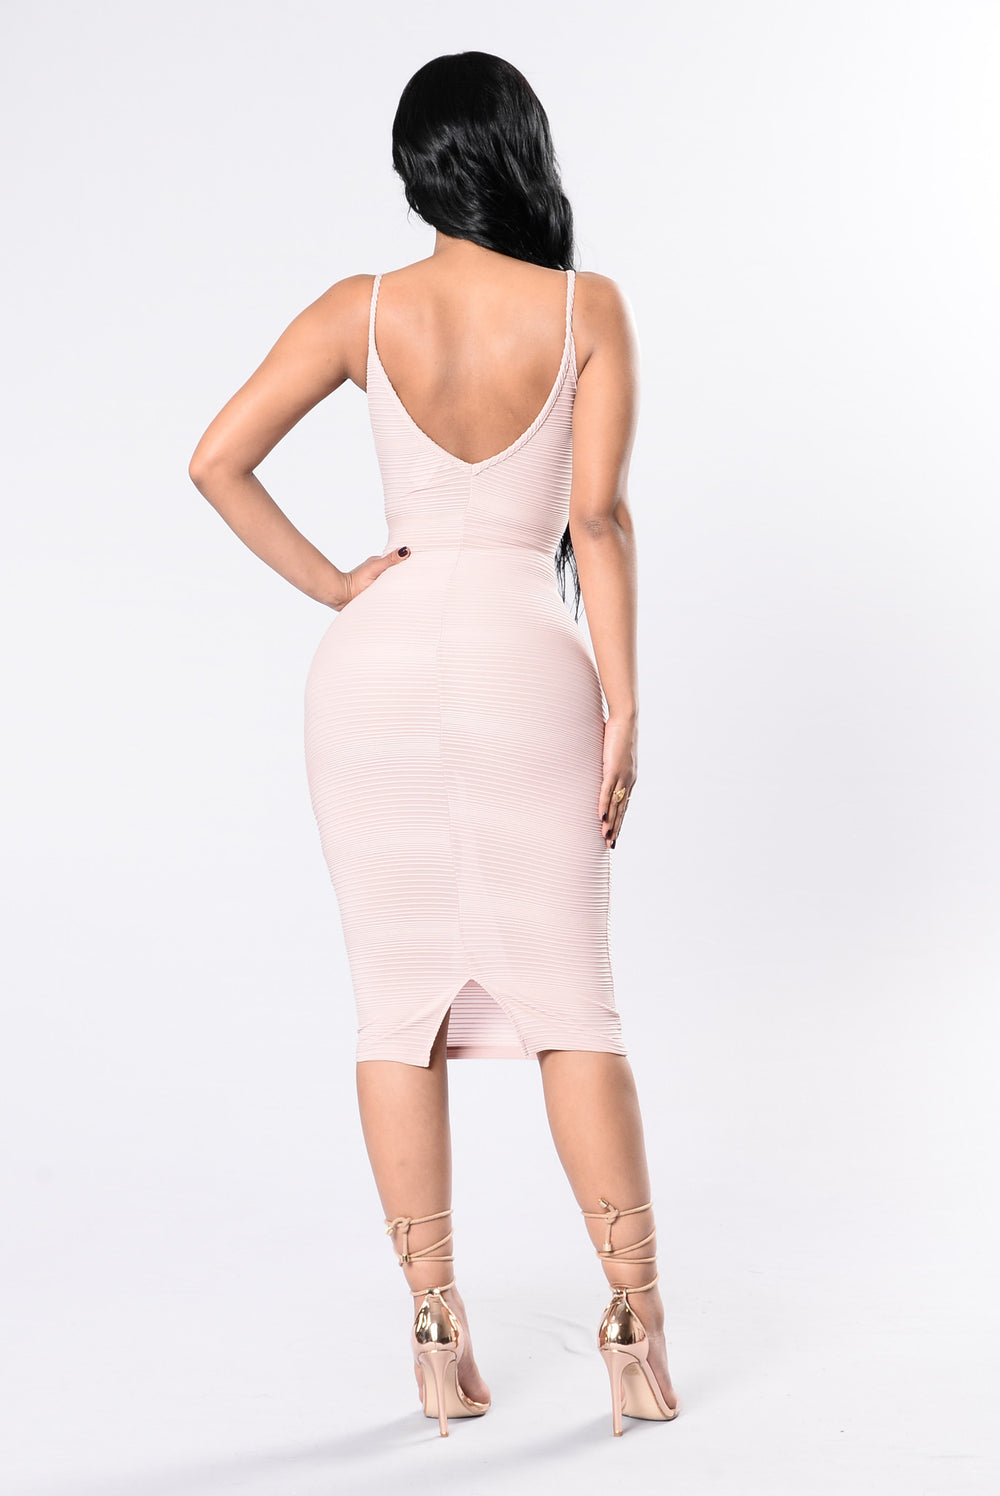 Take Me Out Tonight Dress - Mauve